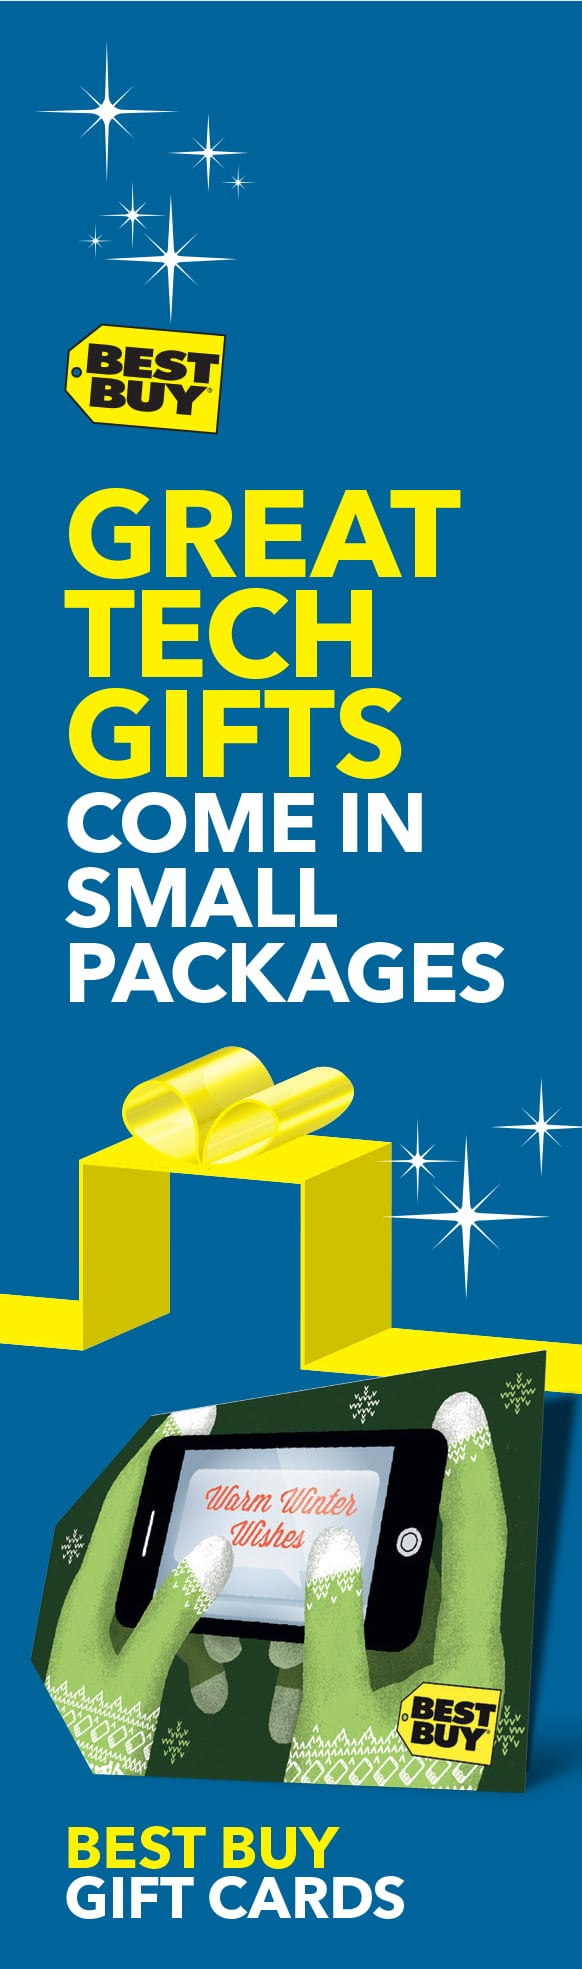 #bestbuy #sponsored #techgifts